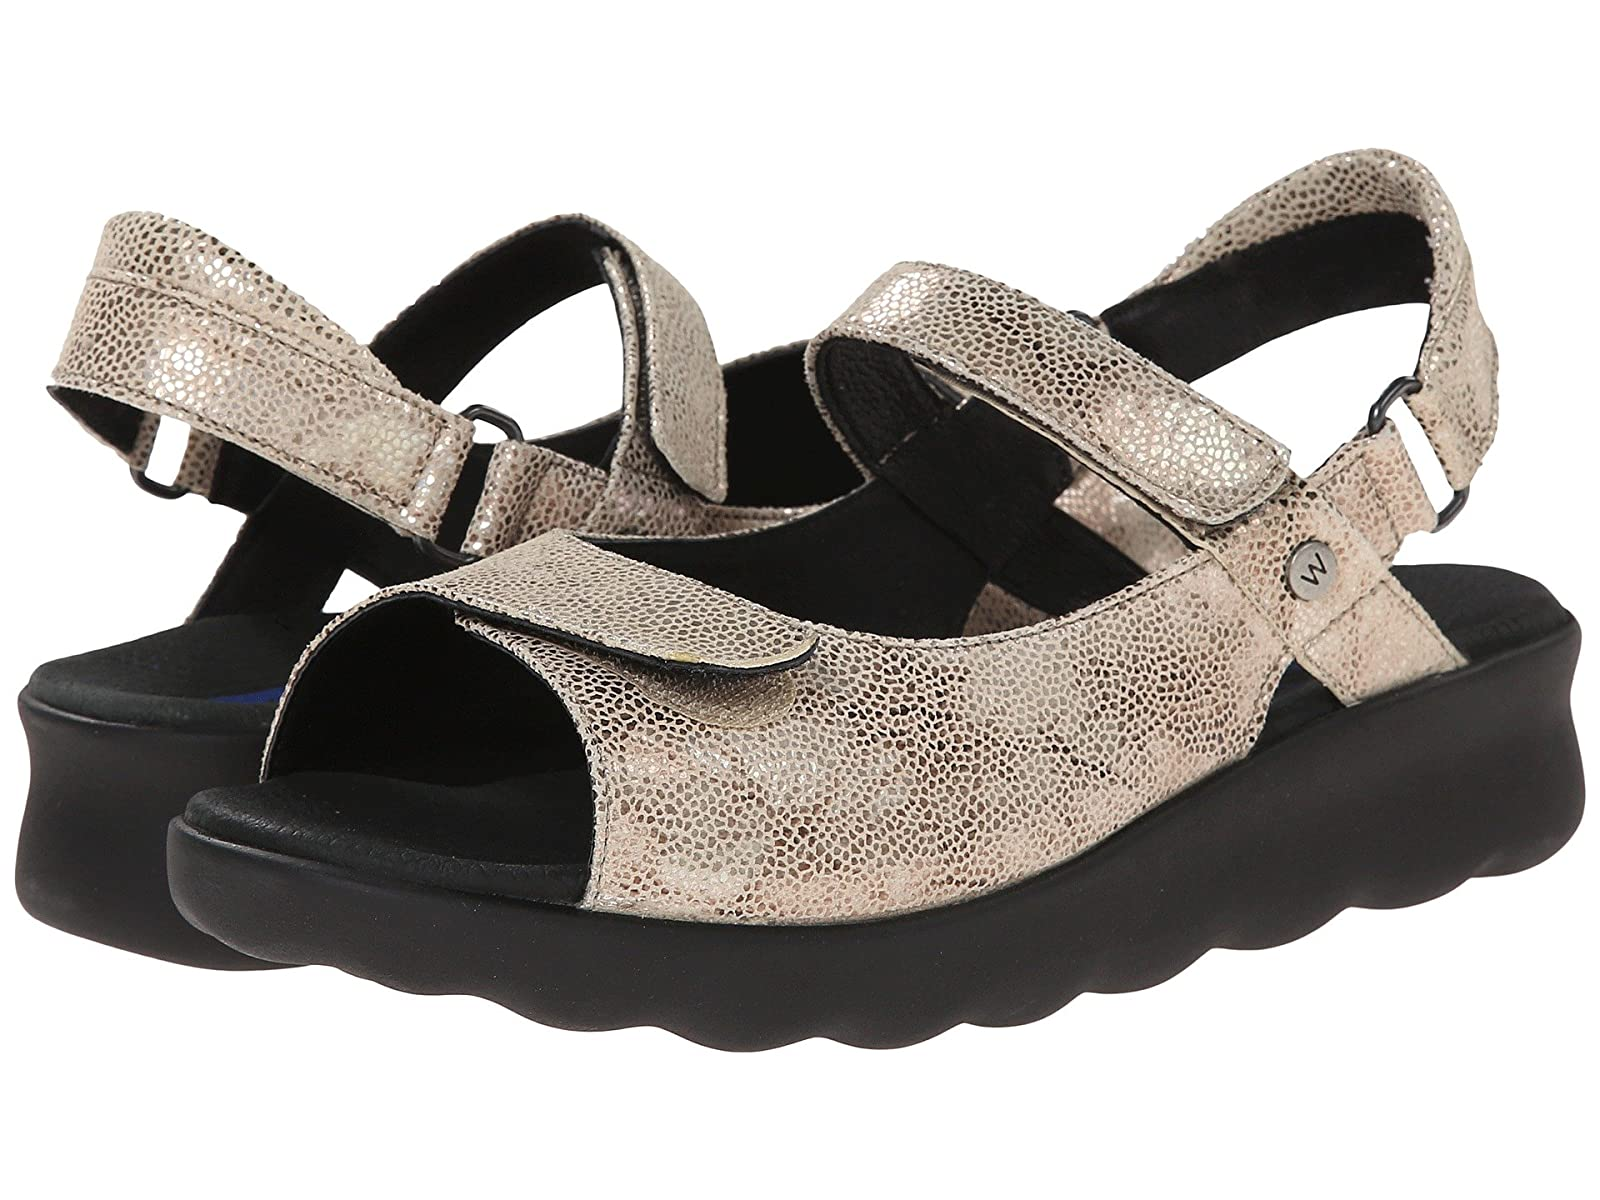 Wolky PichuAtmospheric grades have affordable shoes